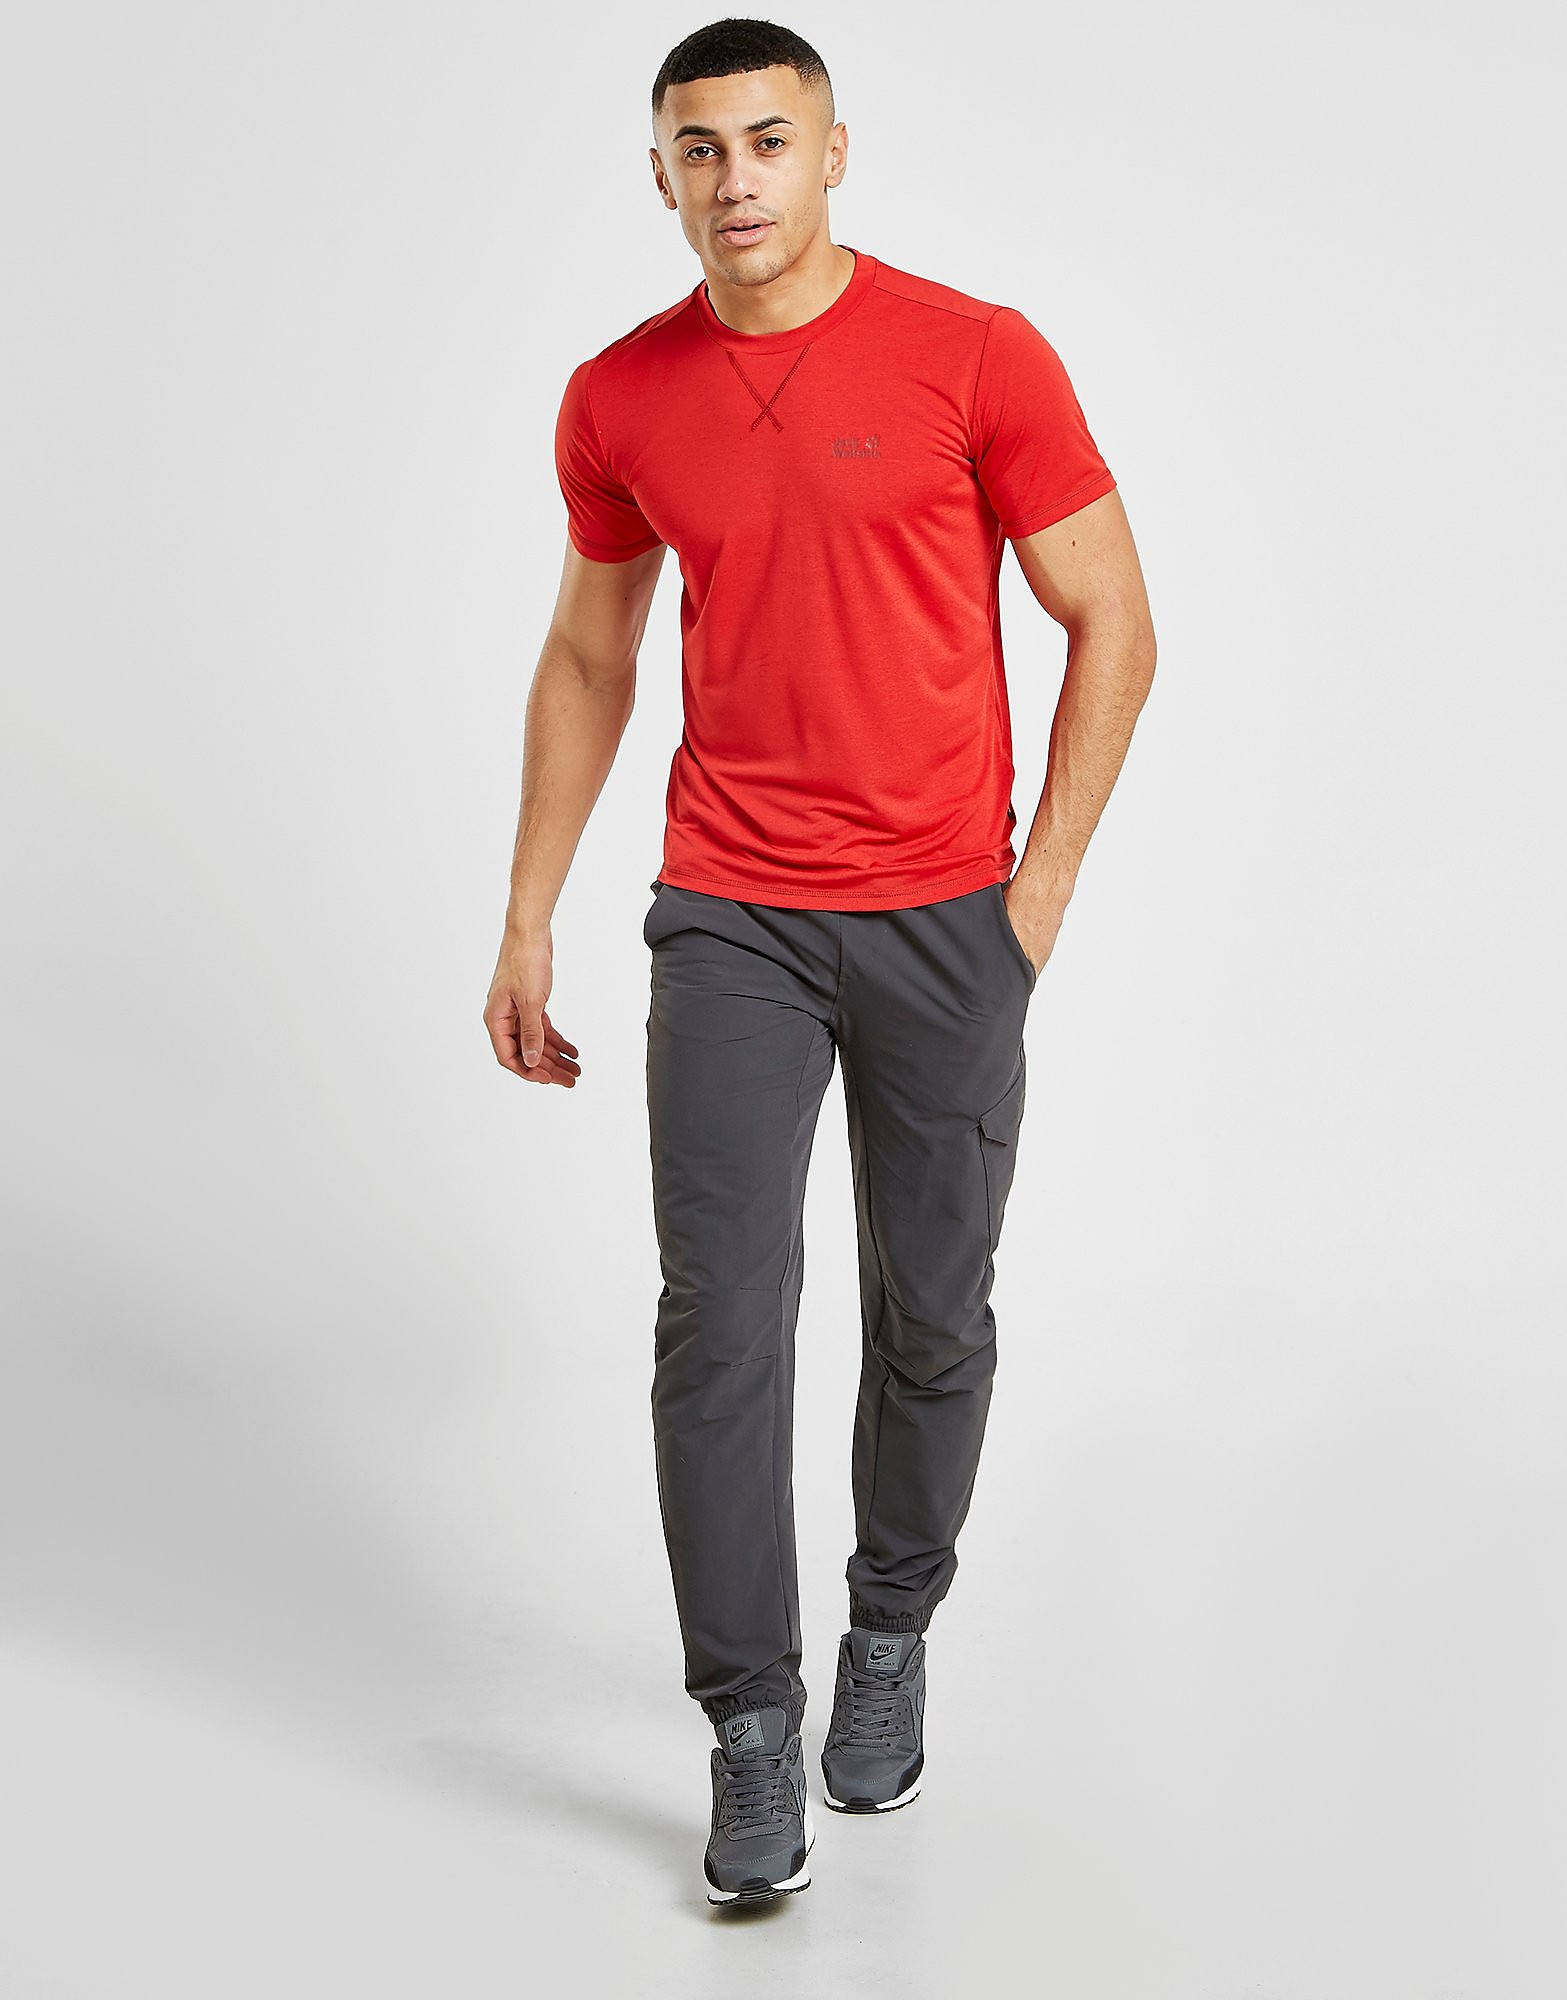 Jack Wolfskin Short Sleeve Core Tech T-Shirt Heren - Rood - Heren